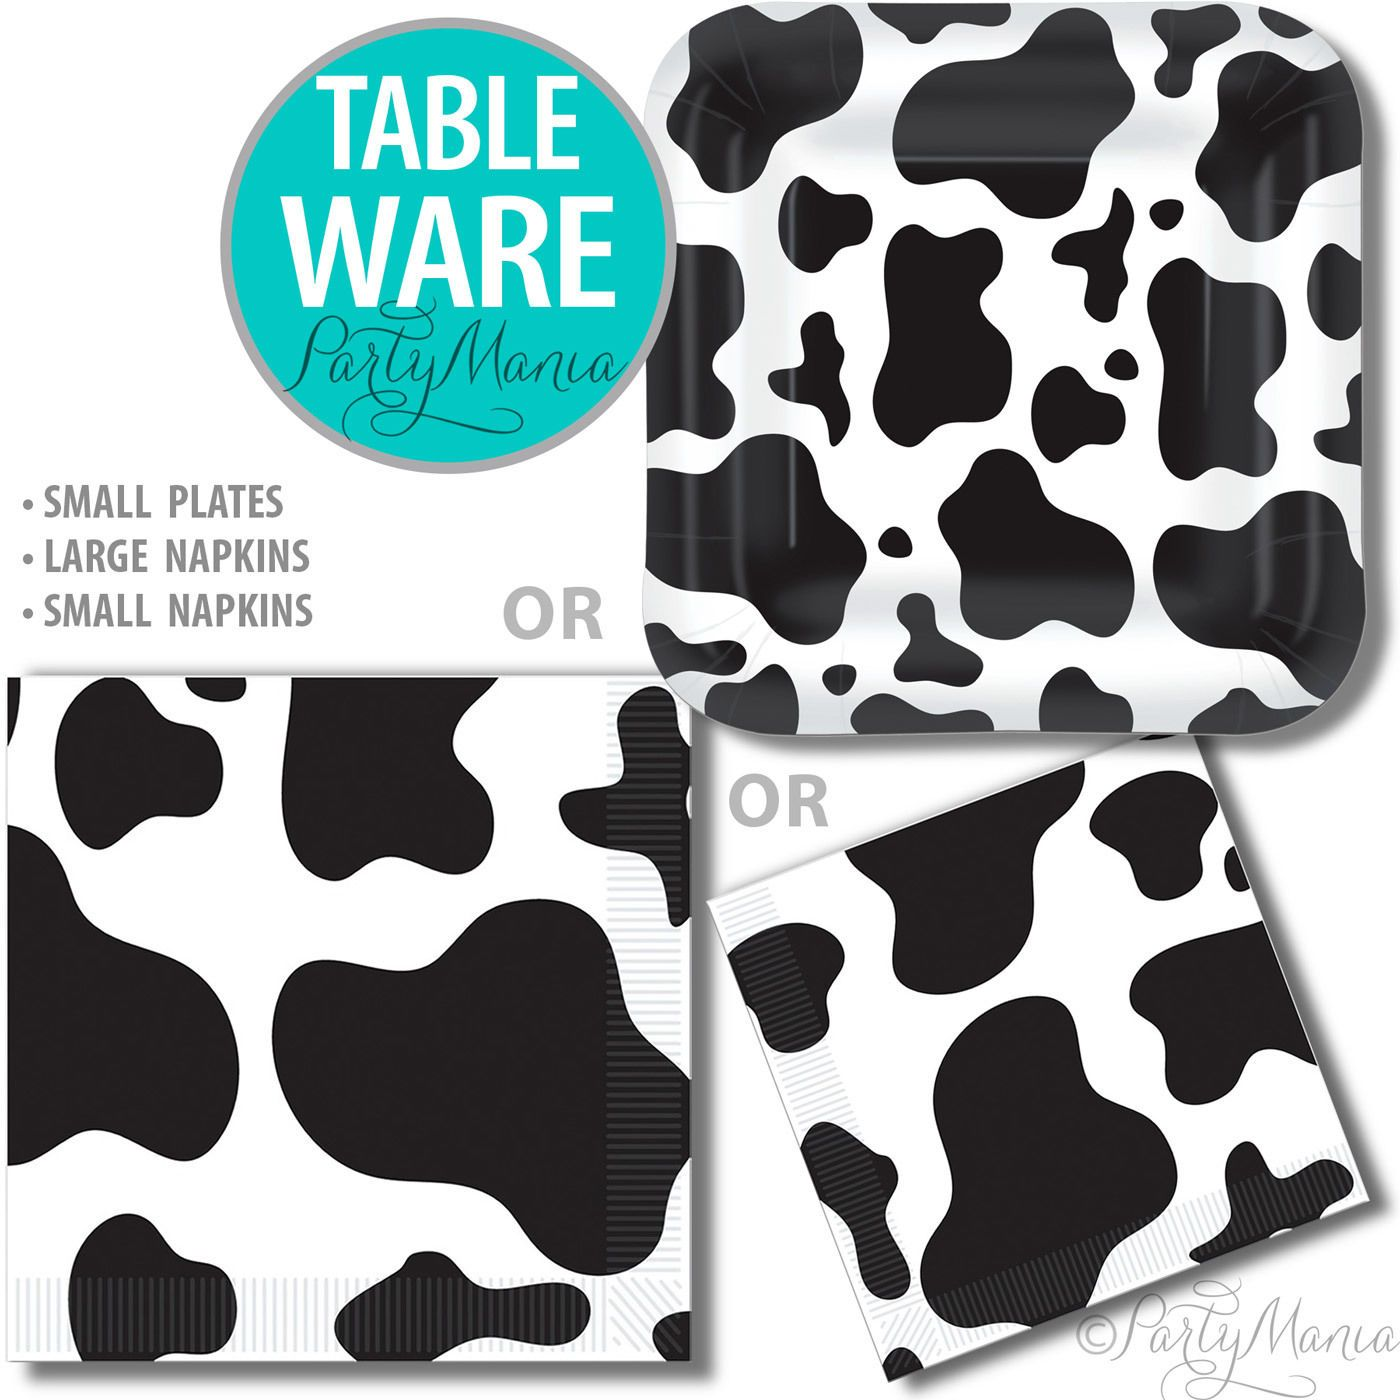 Cow print farm animal western birthday party supplies decorations napkins plates  sc 1 st  Pinterest & Cow print farm animal western birthday party supplies decorations ...